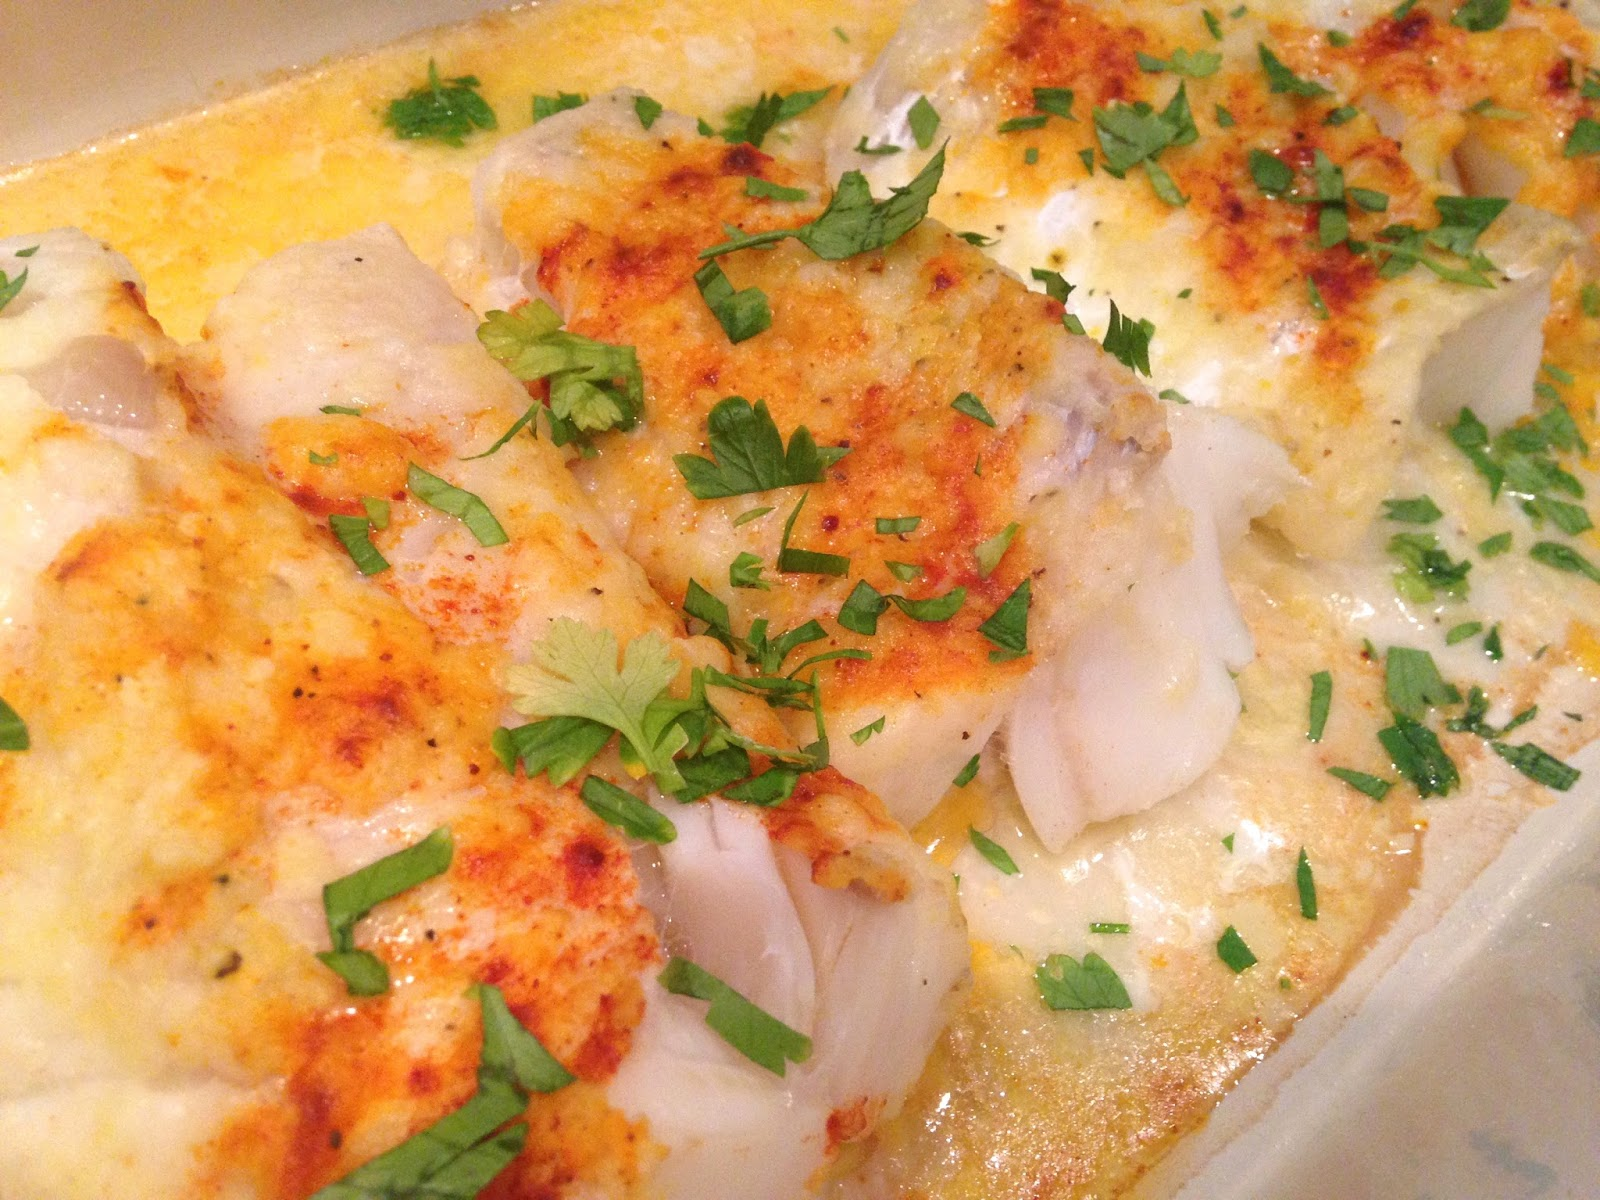 Rita's Recipes: Lemon-Butter Baked Cod